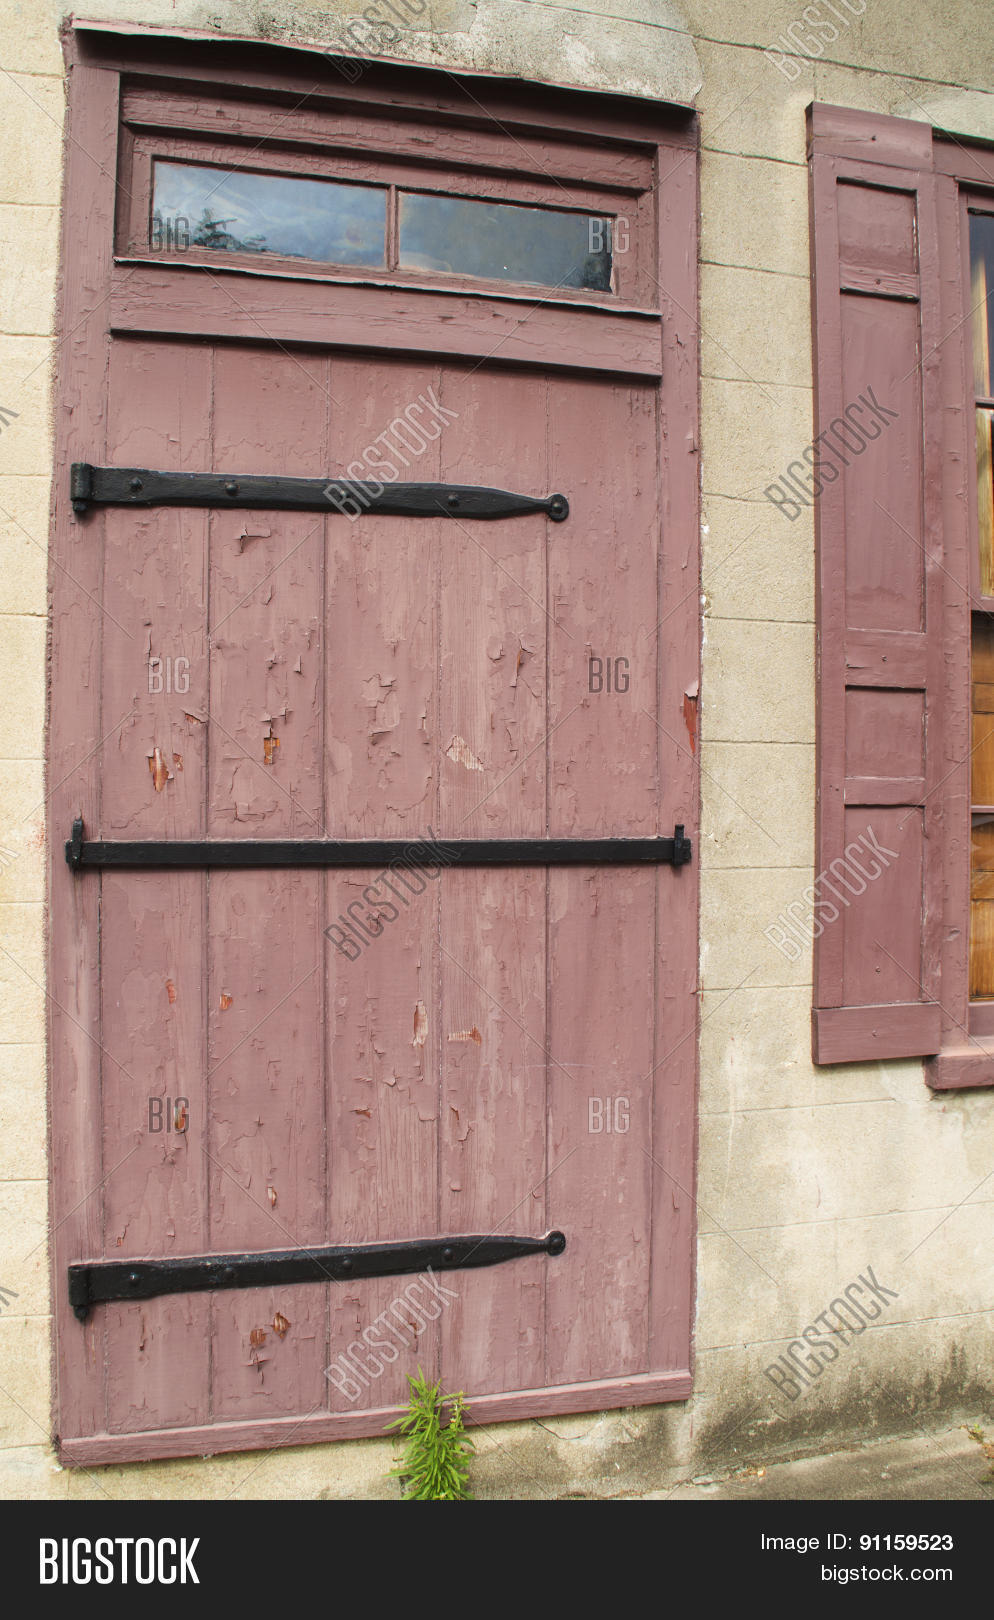 Barn Door Entrance Image Photo Free Trial Bigstock